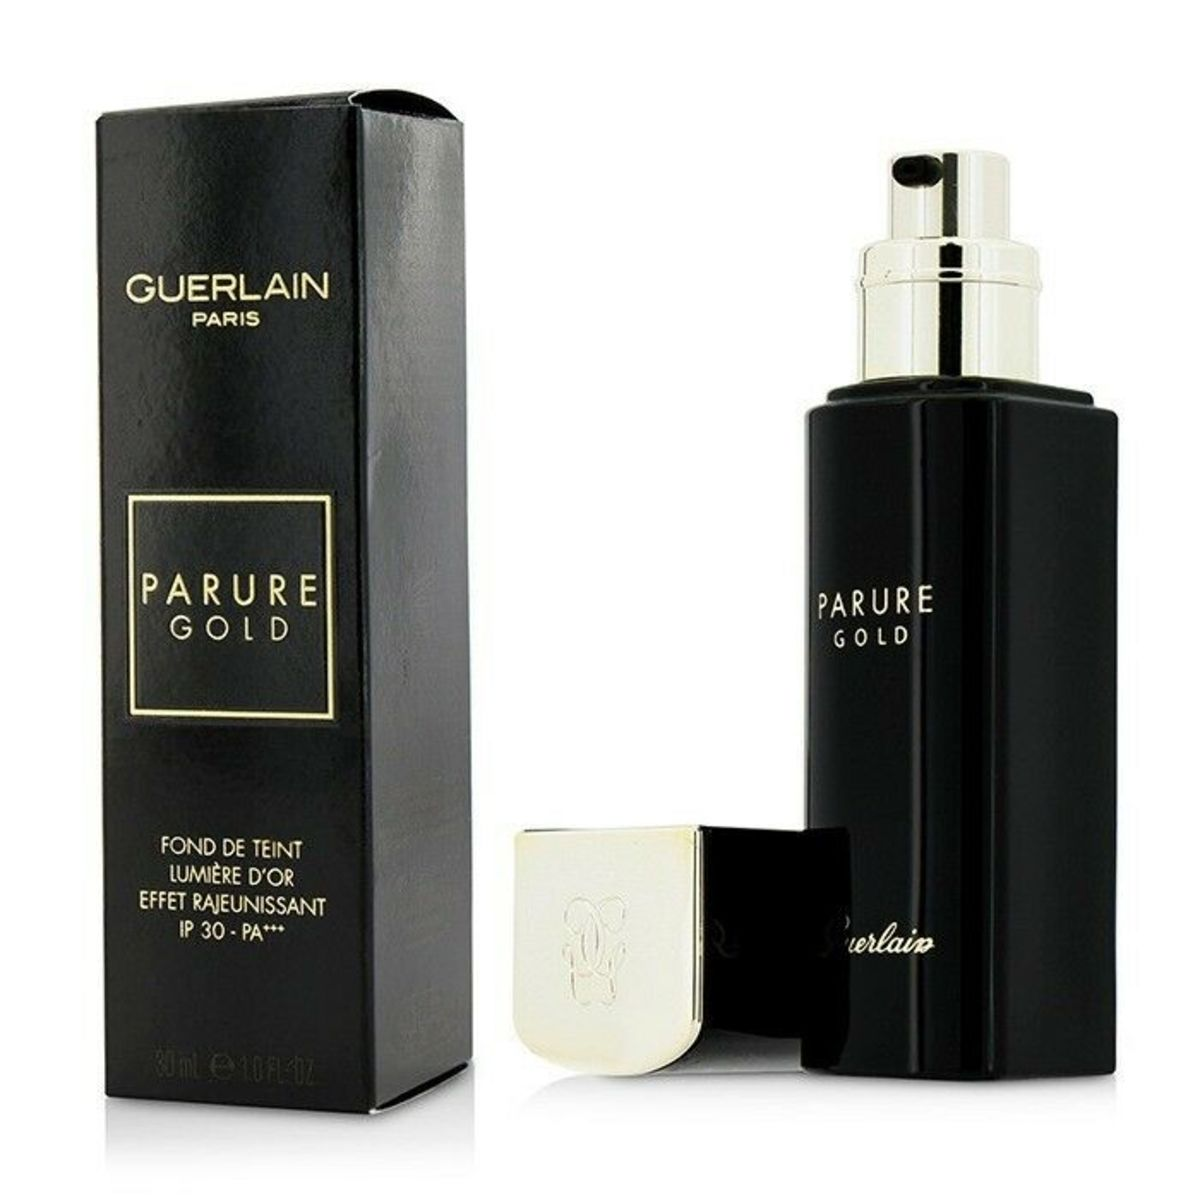 Papure Gold Radiance Foundation 30ml #02 [Parallel Import]